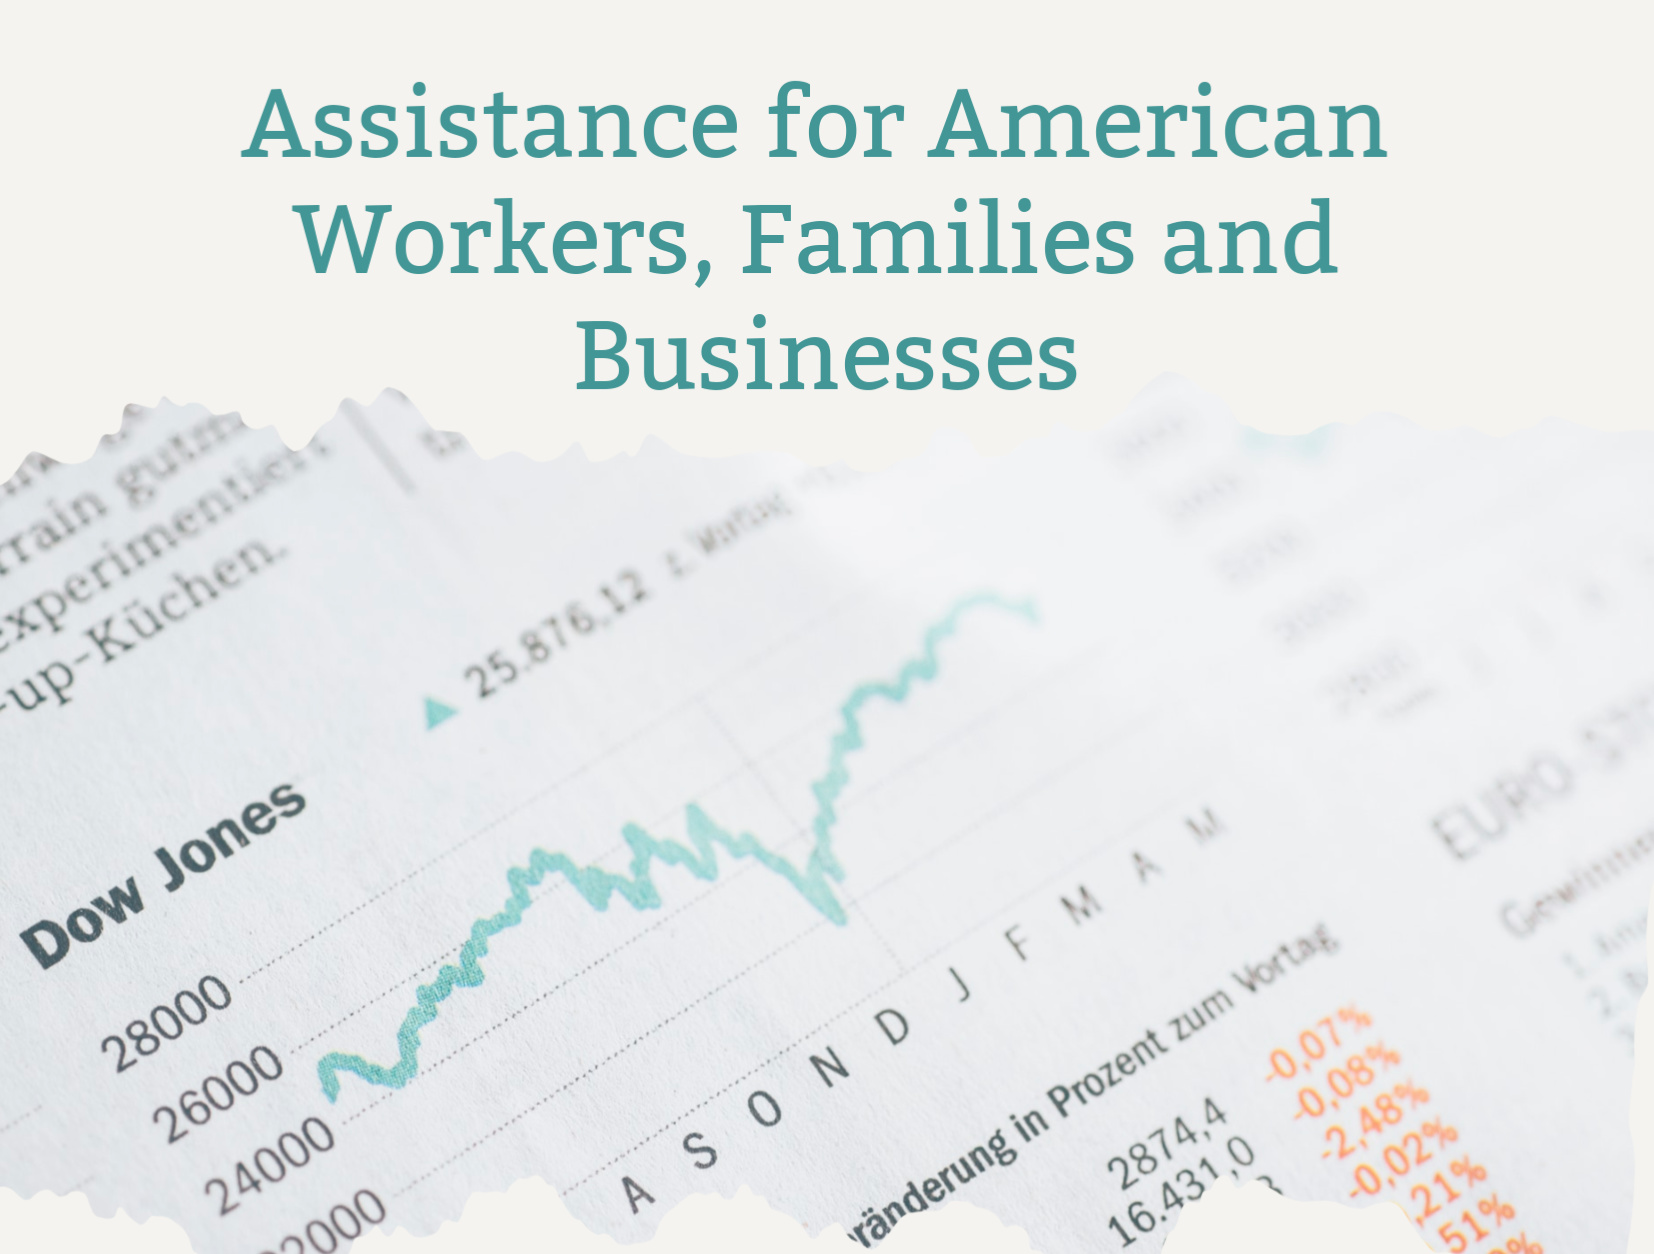 The CARES Act Provides Businesses and Workers With Economic Relief